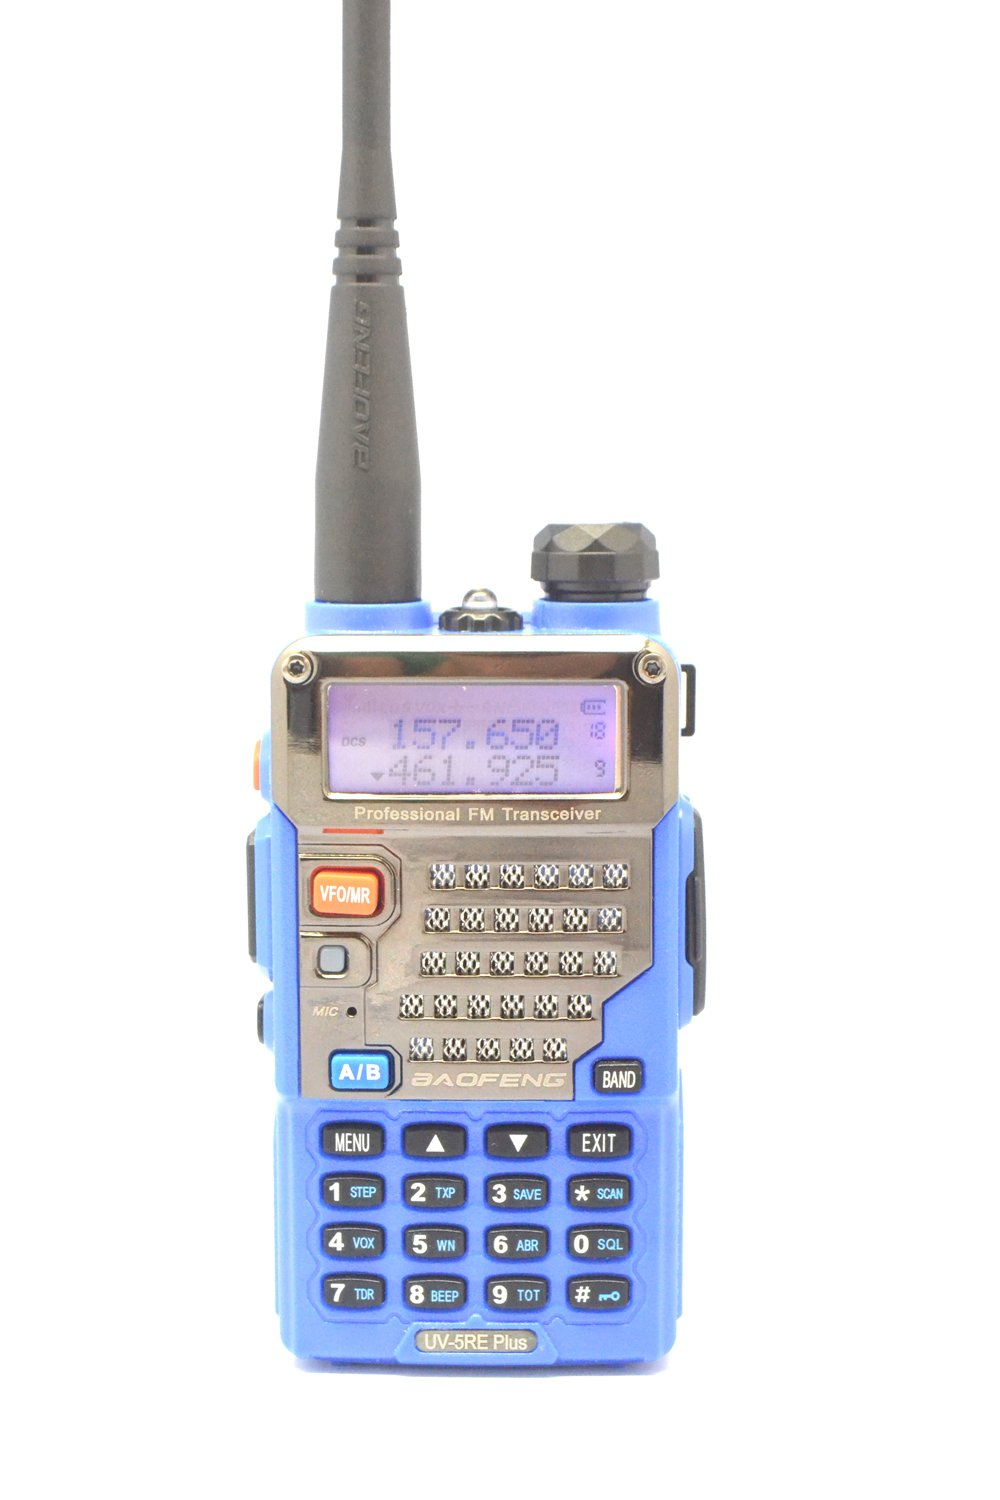 New Highest Version Baofeng Uv 5re Plus Dual Band Vhf Ht Verxion Uhf 136 174mhz400 520mhz Walkie Talkie 5r Blue Car Electronics